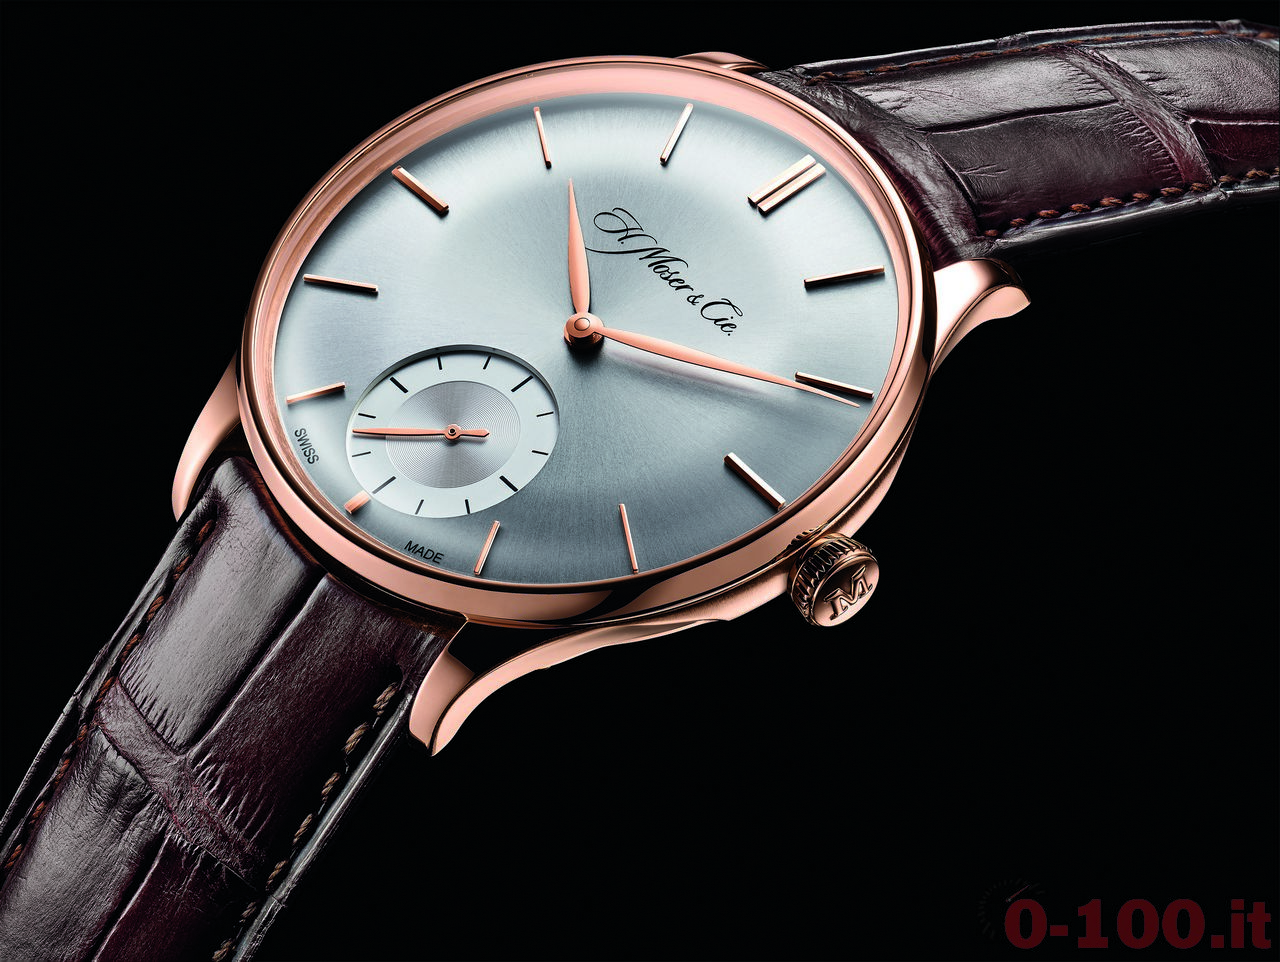 Baselworld-2014-H. Moser & Cie Venturer Small Seconds _0-10013